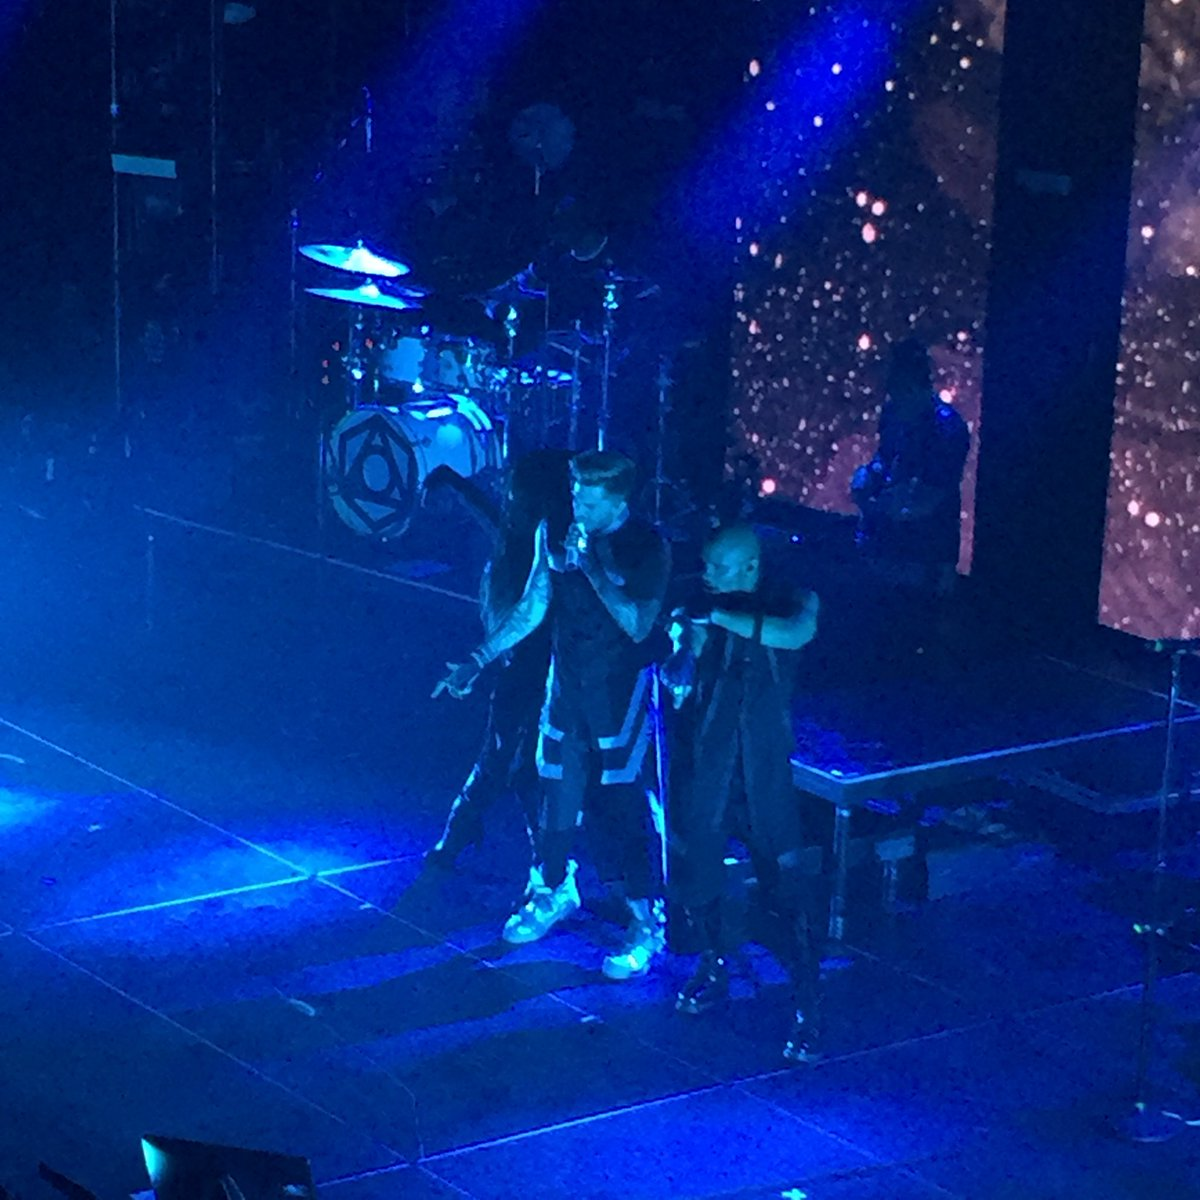 Enjoying @adamlambert @TabernacleATL singing #Ghosttown https://t.co/v7cq6Vh00U